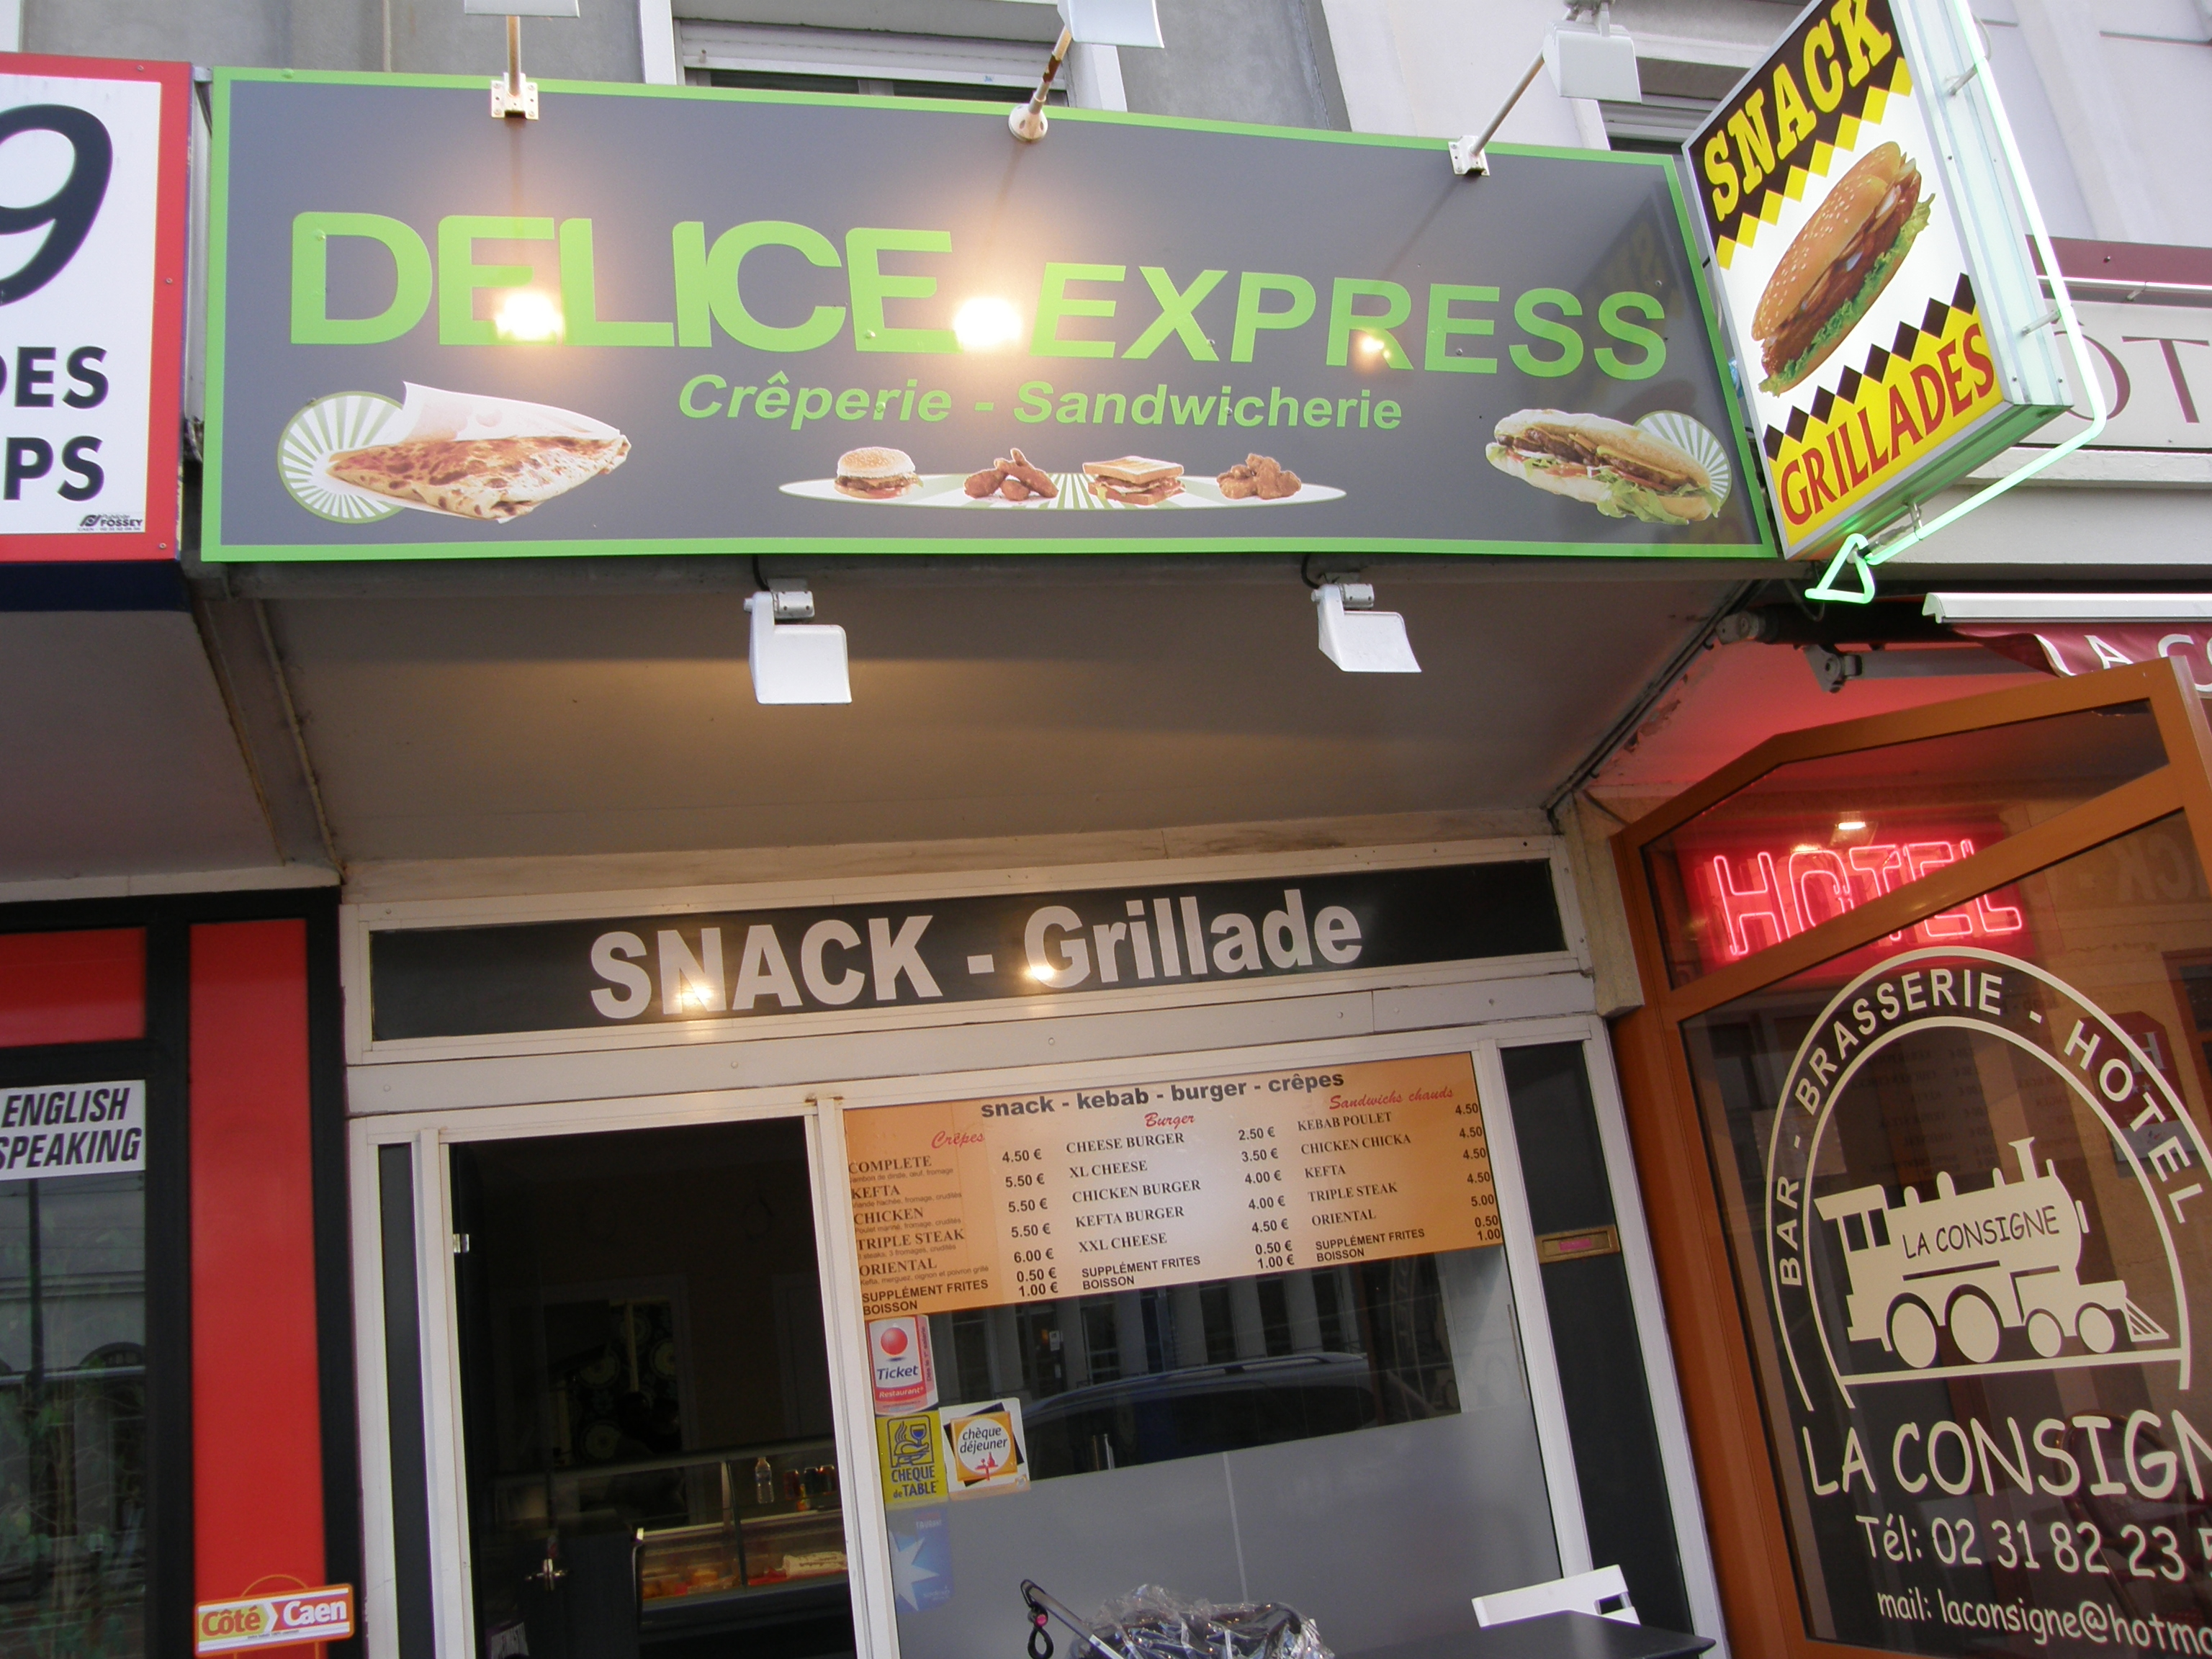 Delice Express